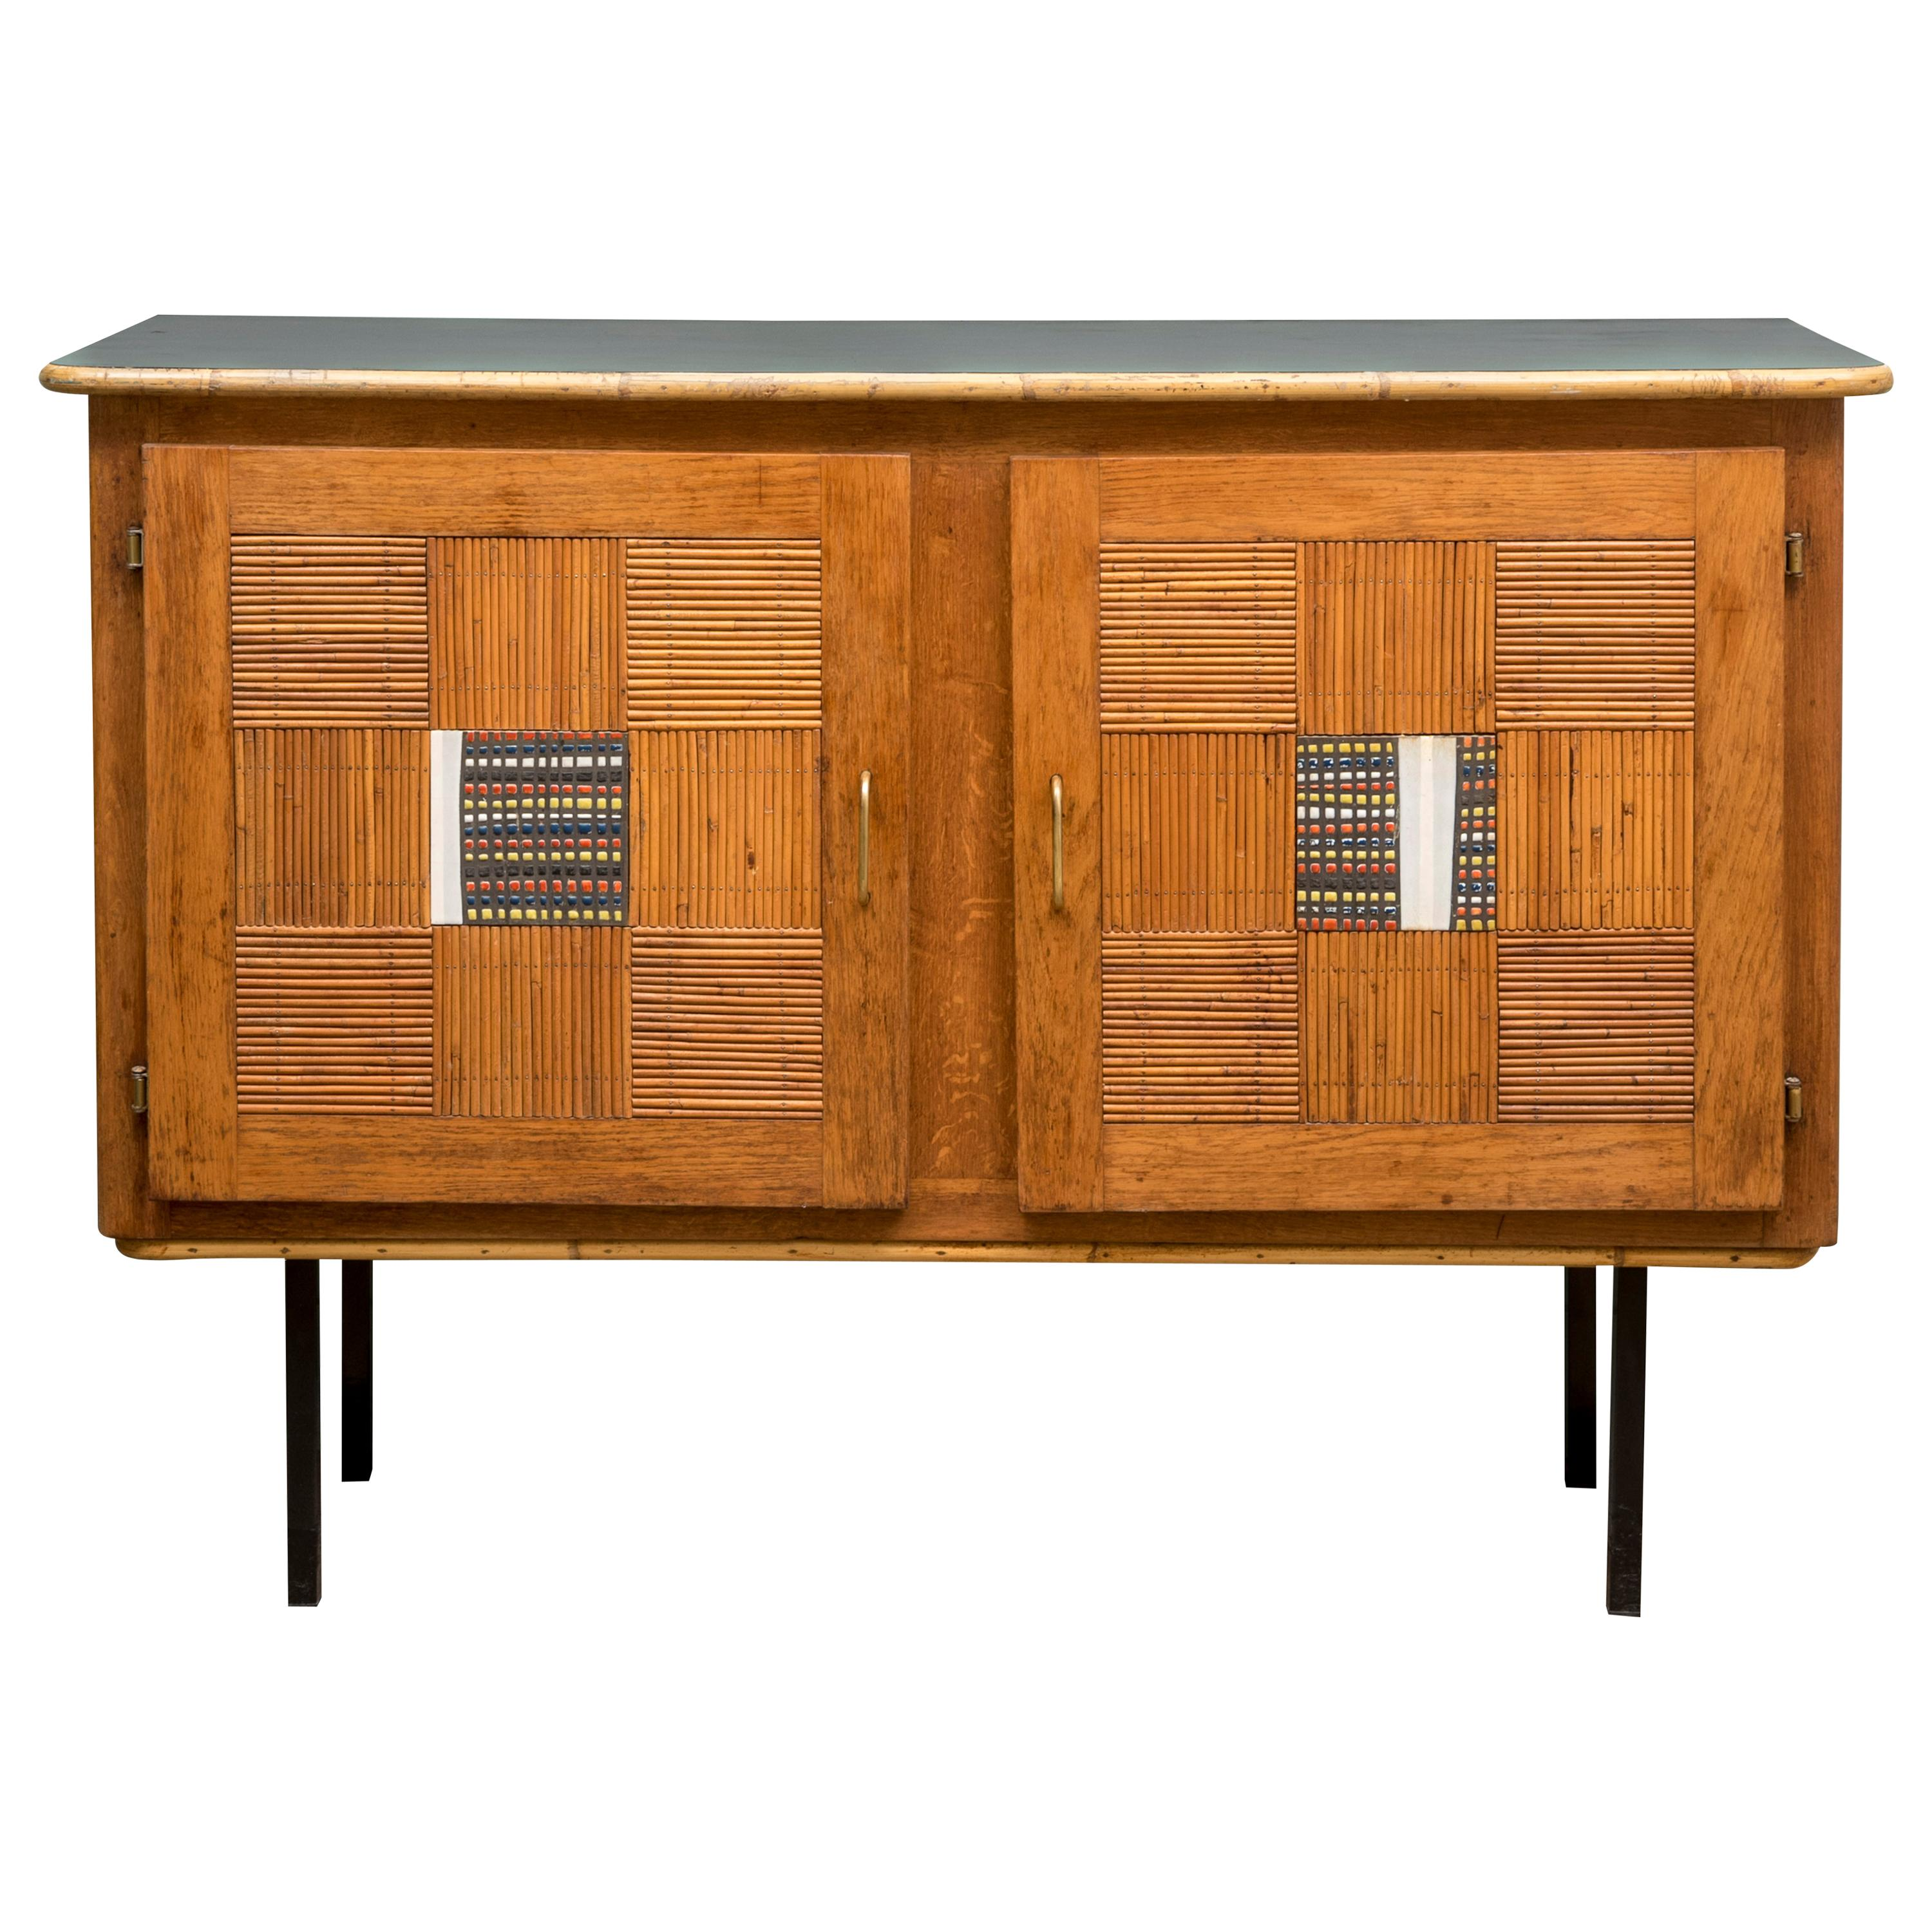 Oak and Rattan Sideboard by Audoux and Minet